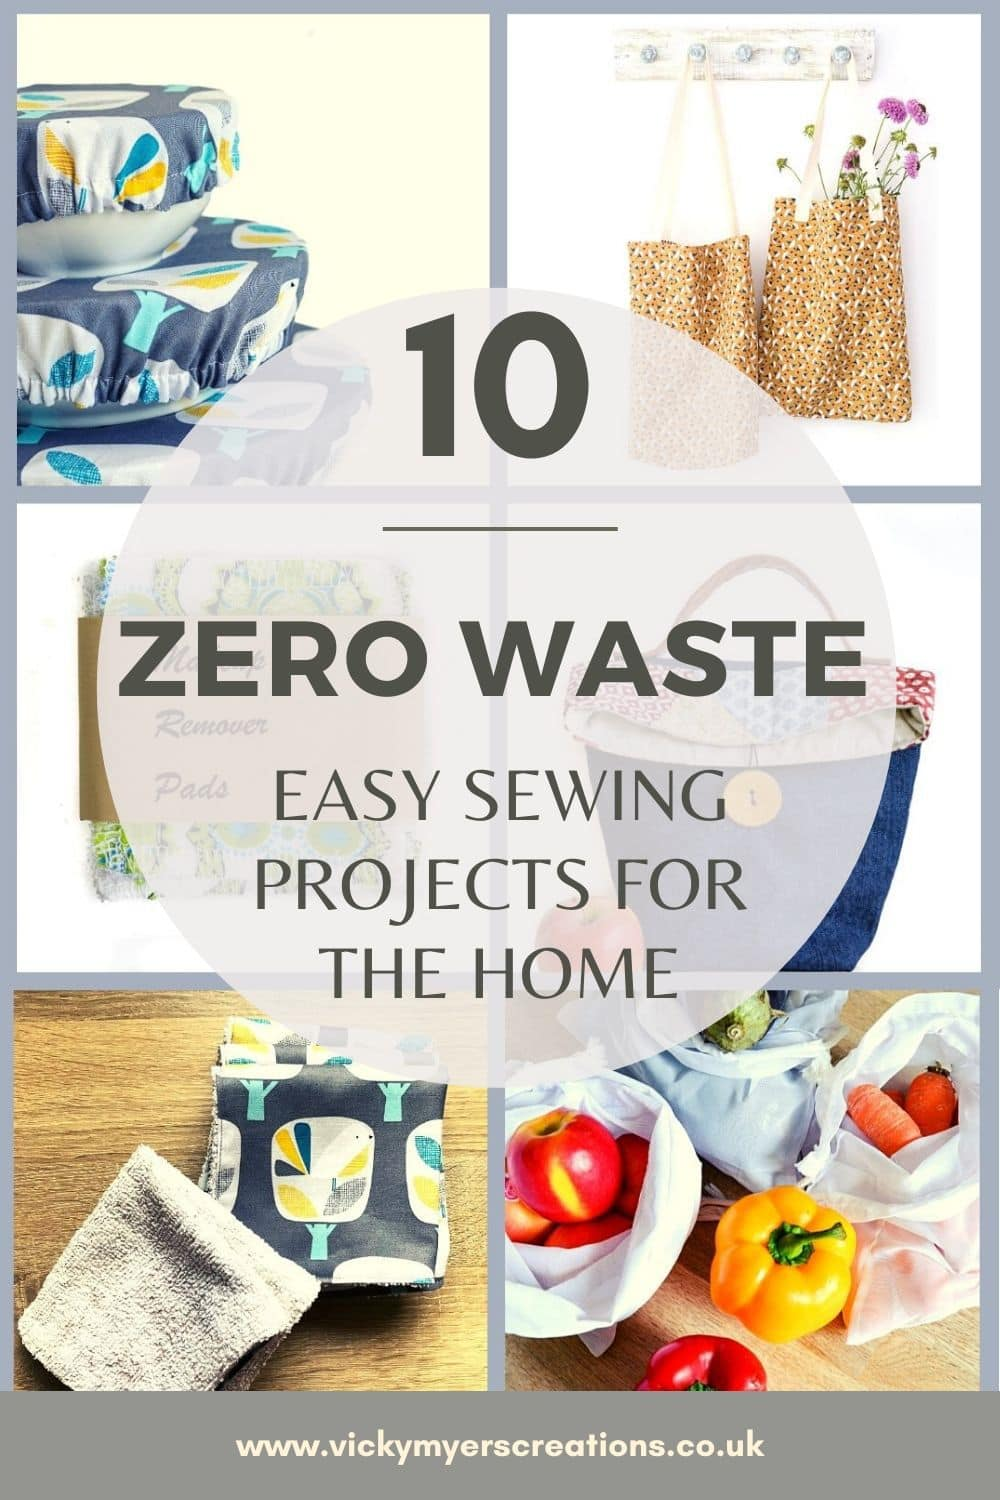 Simple sewing projects to swap out single use items. Be several steps nearer to a zero waste lifestyle with these easy DIY eco friendly swaps.